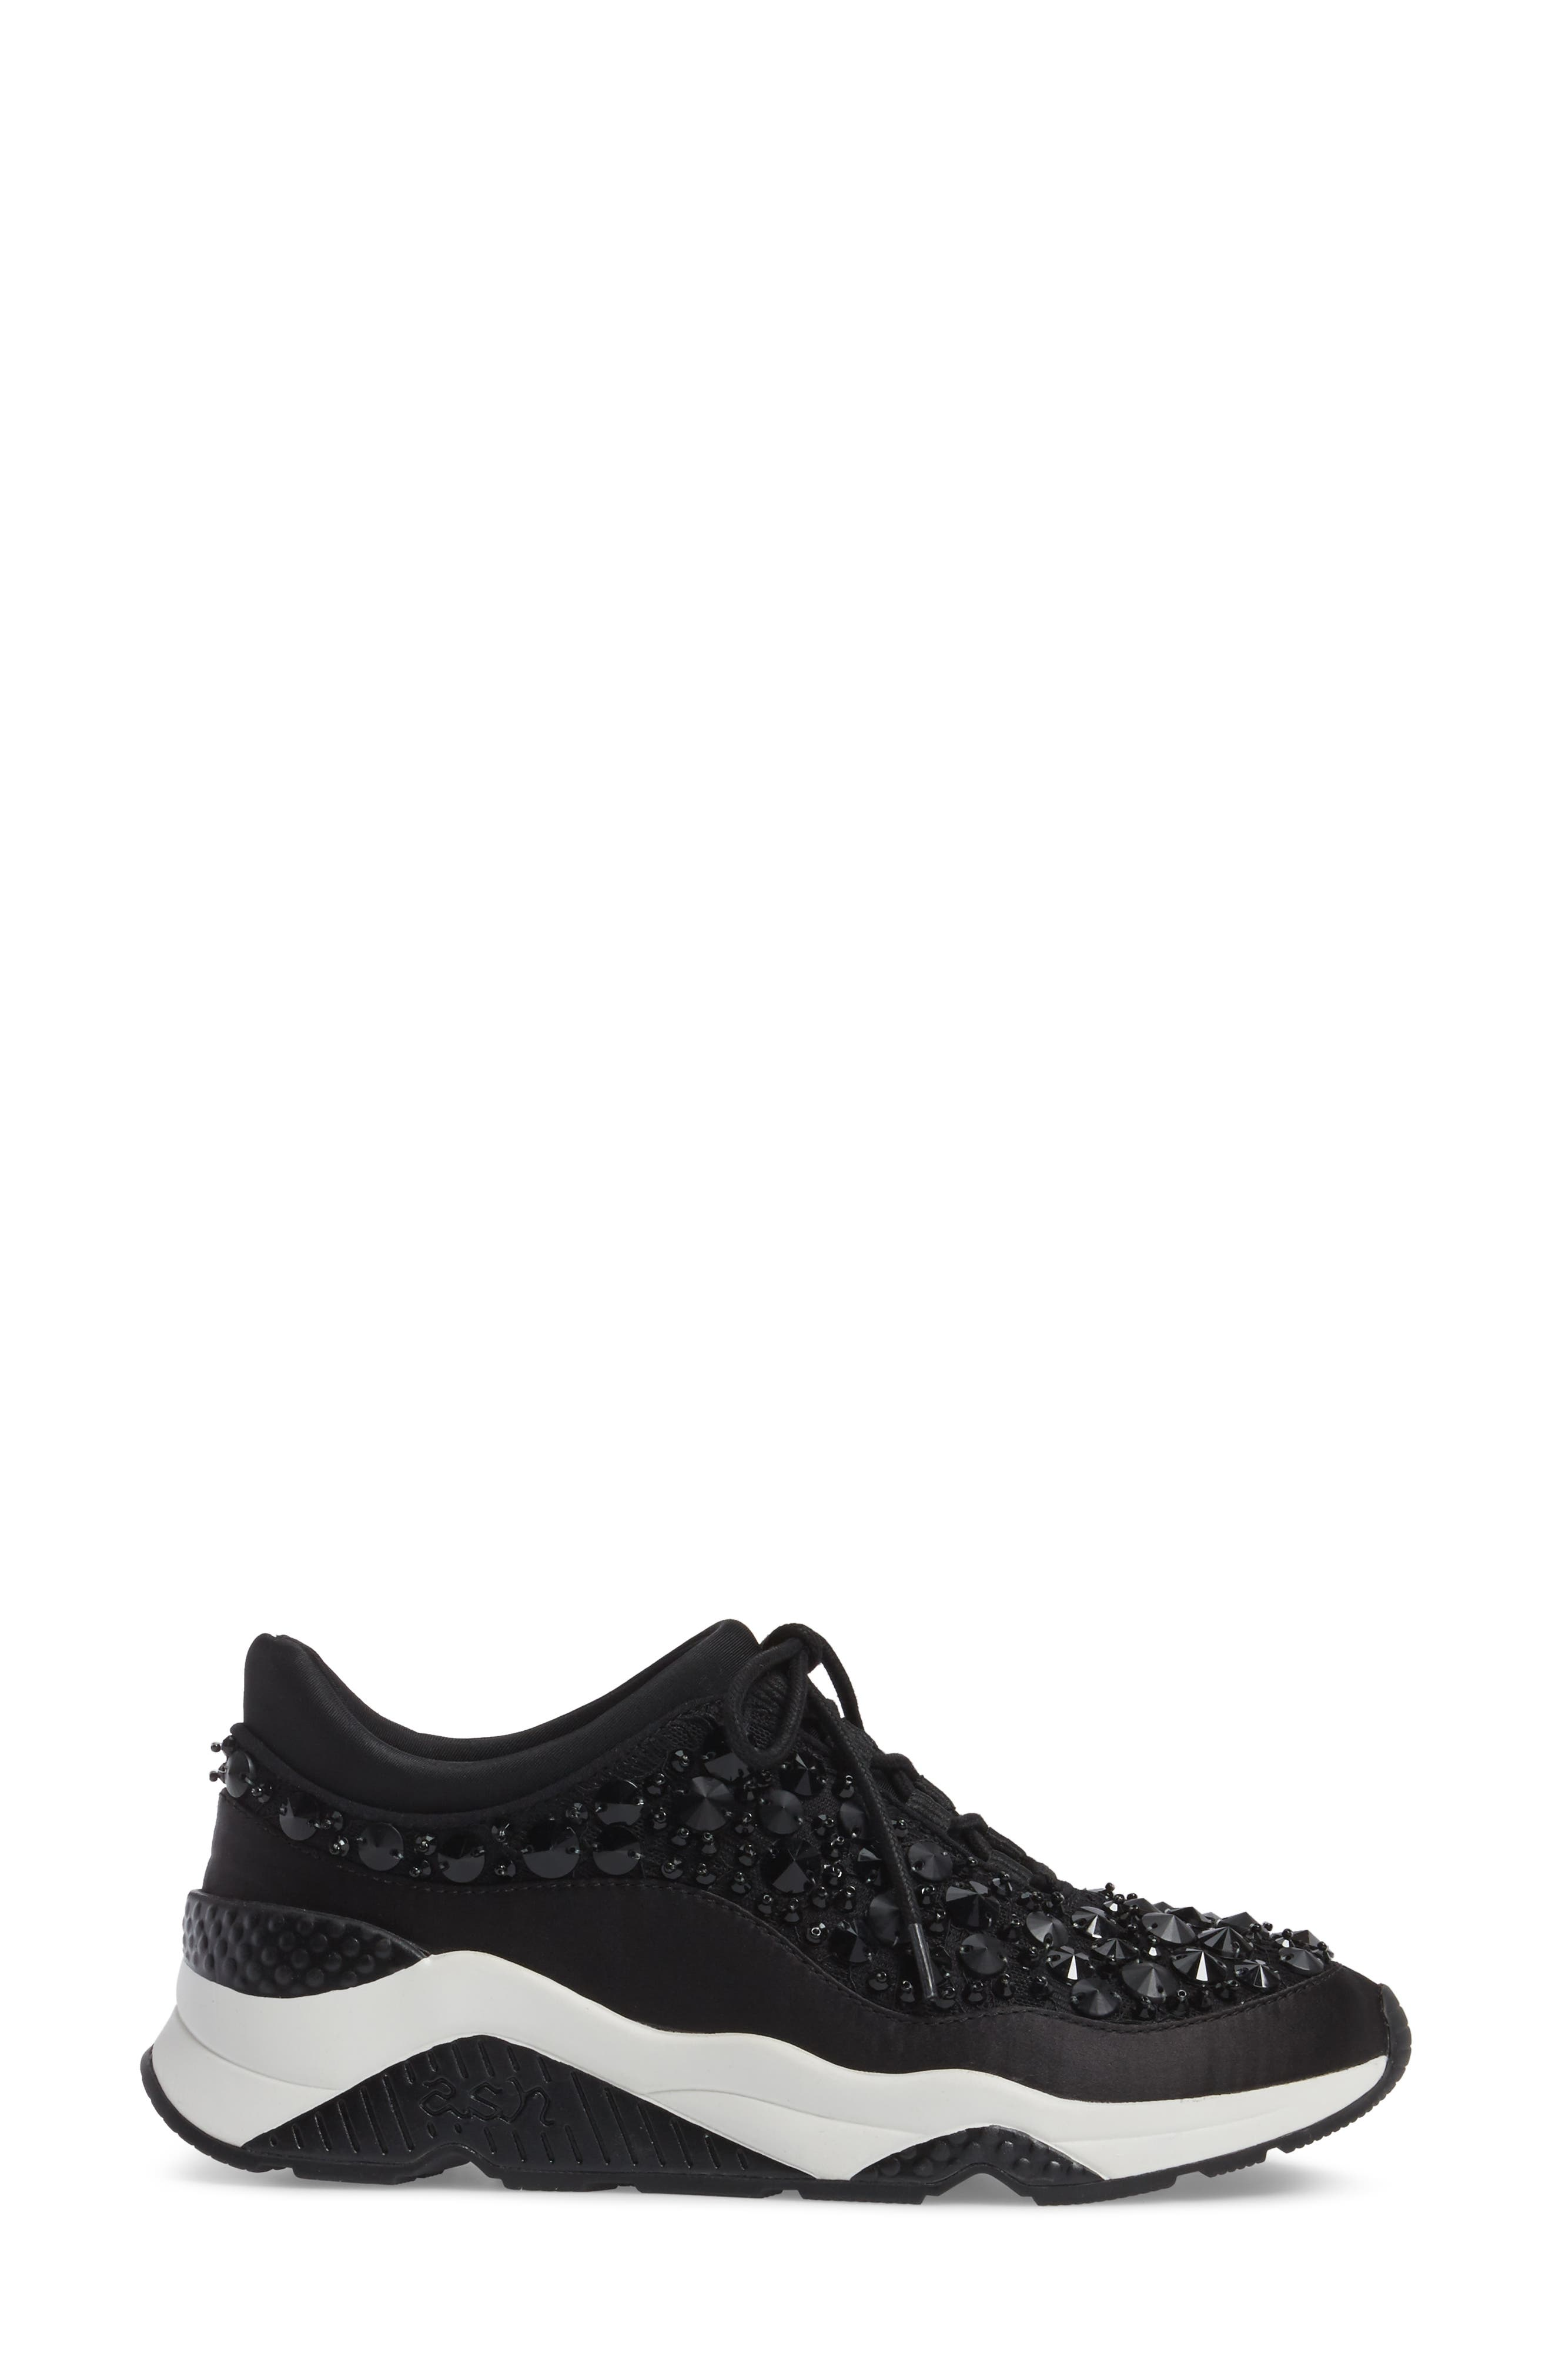 Muse Beads Sneaker,                             Alternate thumbnail 3, color,                             Black/ Black Fabric